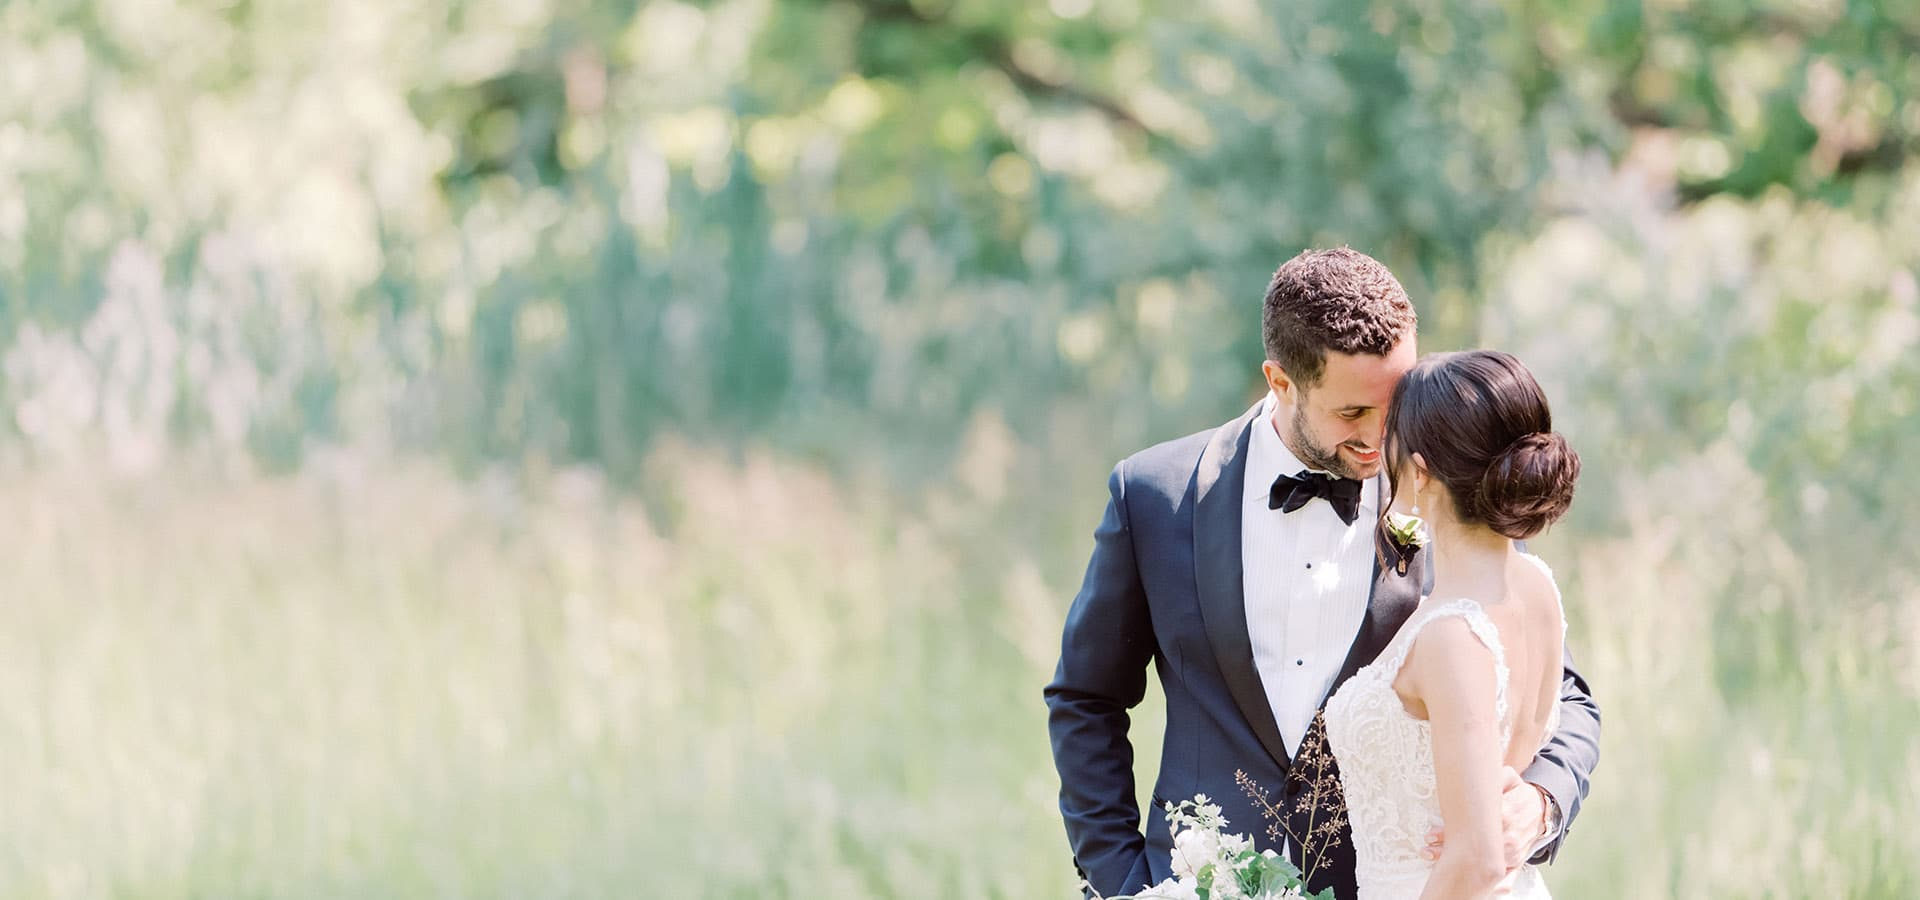 Hero image for Jessica and Matt's Bright Big Day at The Symes